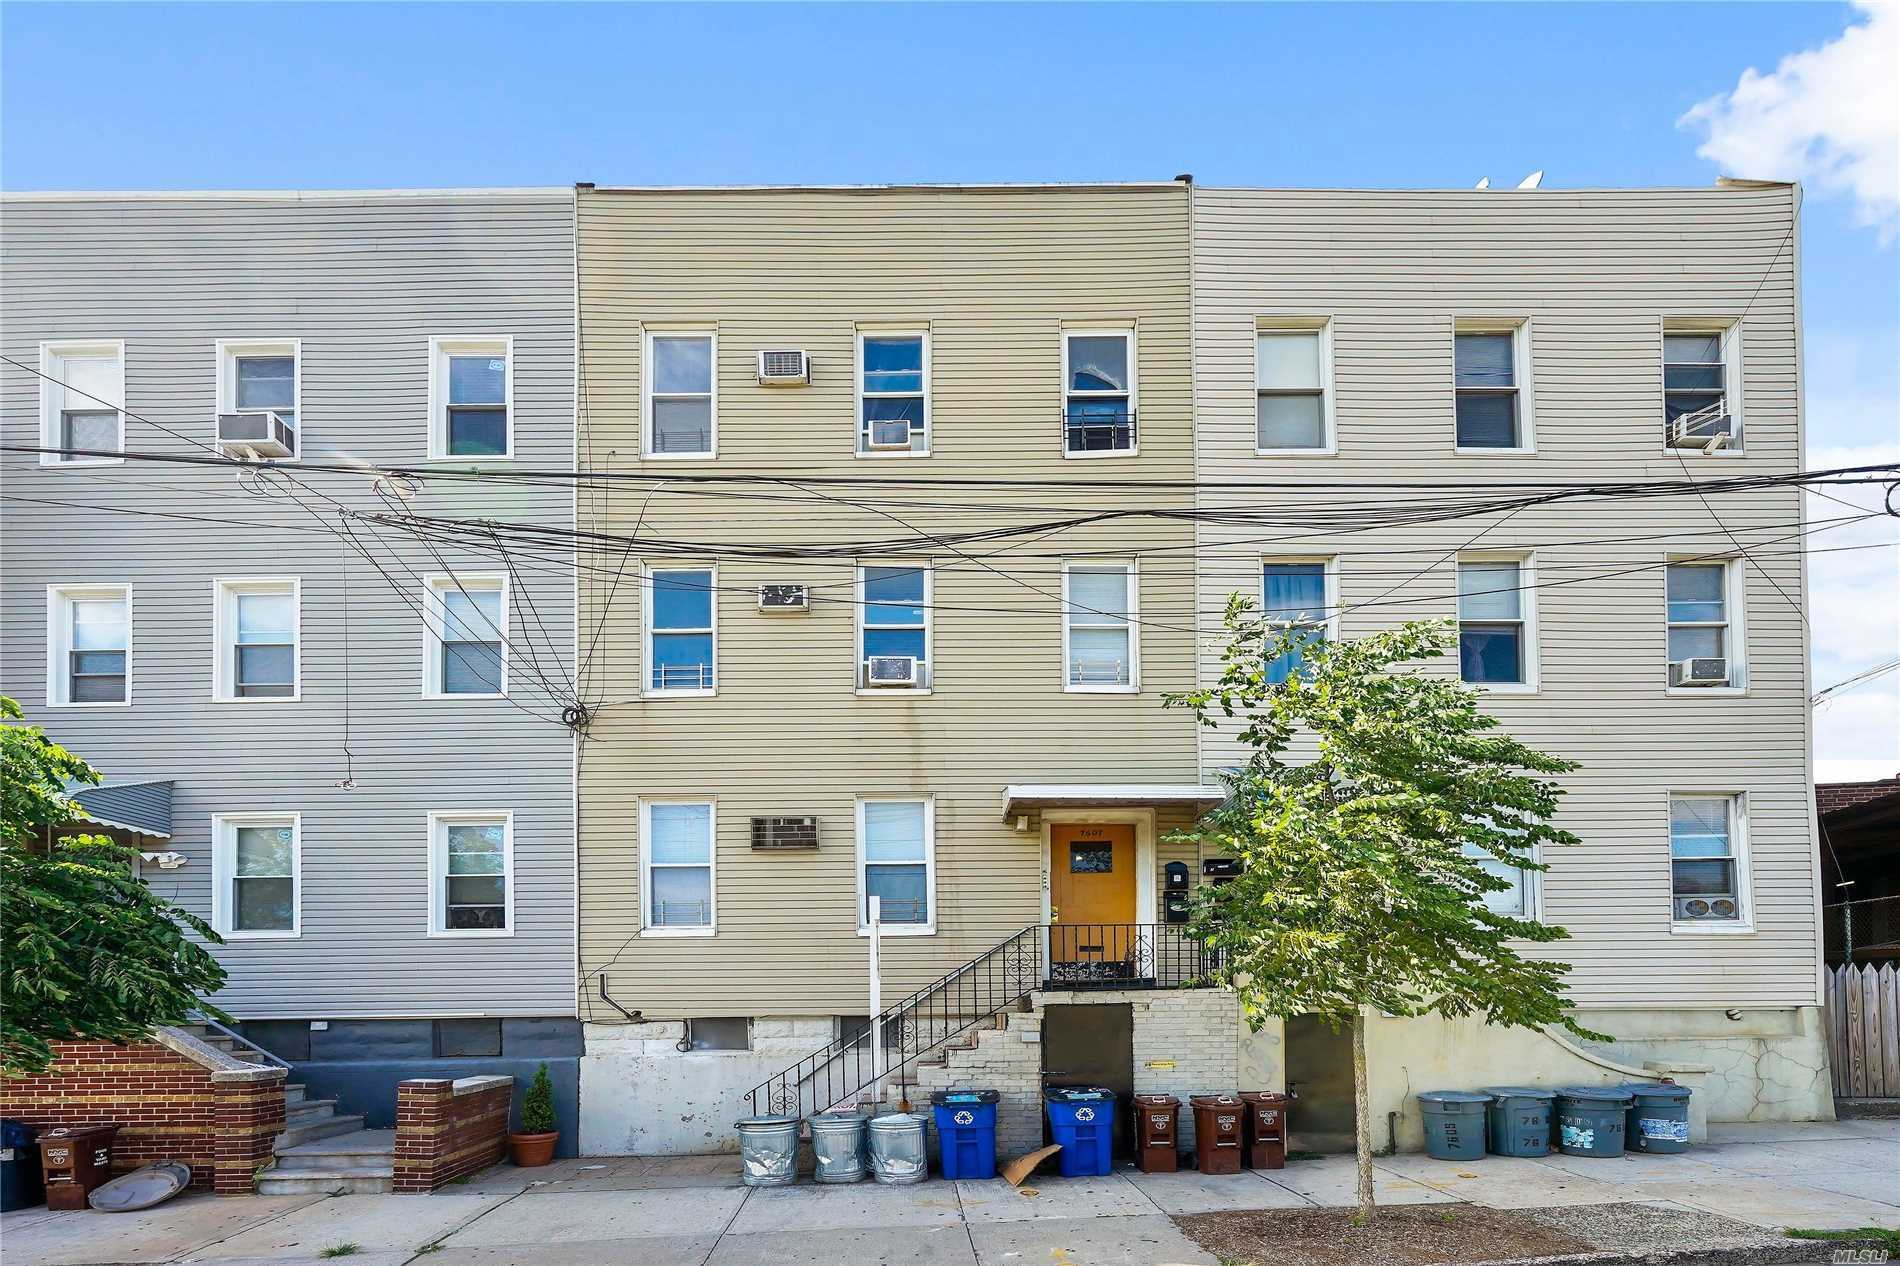 Three Story 3 Family Home, Near All. Border Of Middle Village And Glendale. Close To The Atlas Mall, Shopping On Metropolitan Ave, Forest Park, Etc. Easy Access To Buses On 80th Street. Great Owner User Or Investment. 1st Flr Vacant 3 Bedroom, 2nd Floor, 4 Bedrm, Lease 6/1/18 - 5/31/19 Paying $2, 185, 3rd Floor, 4 Bedrm, Lease 3/1/18 - 2/28/19 Paying $1, 930. Estimated Annual Expenses: Gas - $3, 500, Electric - $600, Property Insurance - $2265, Water/Sewer - $5, 400, Maint - $1740, Snow Rem $20/